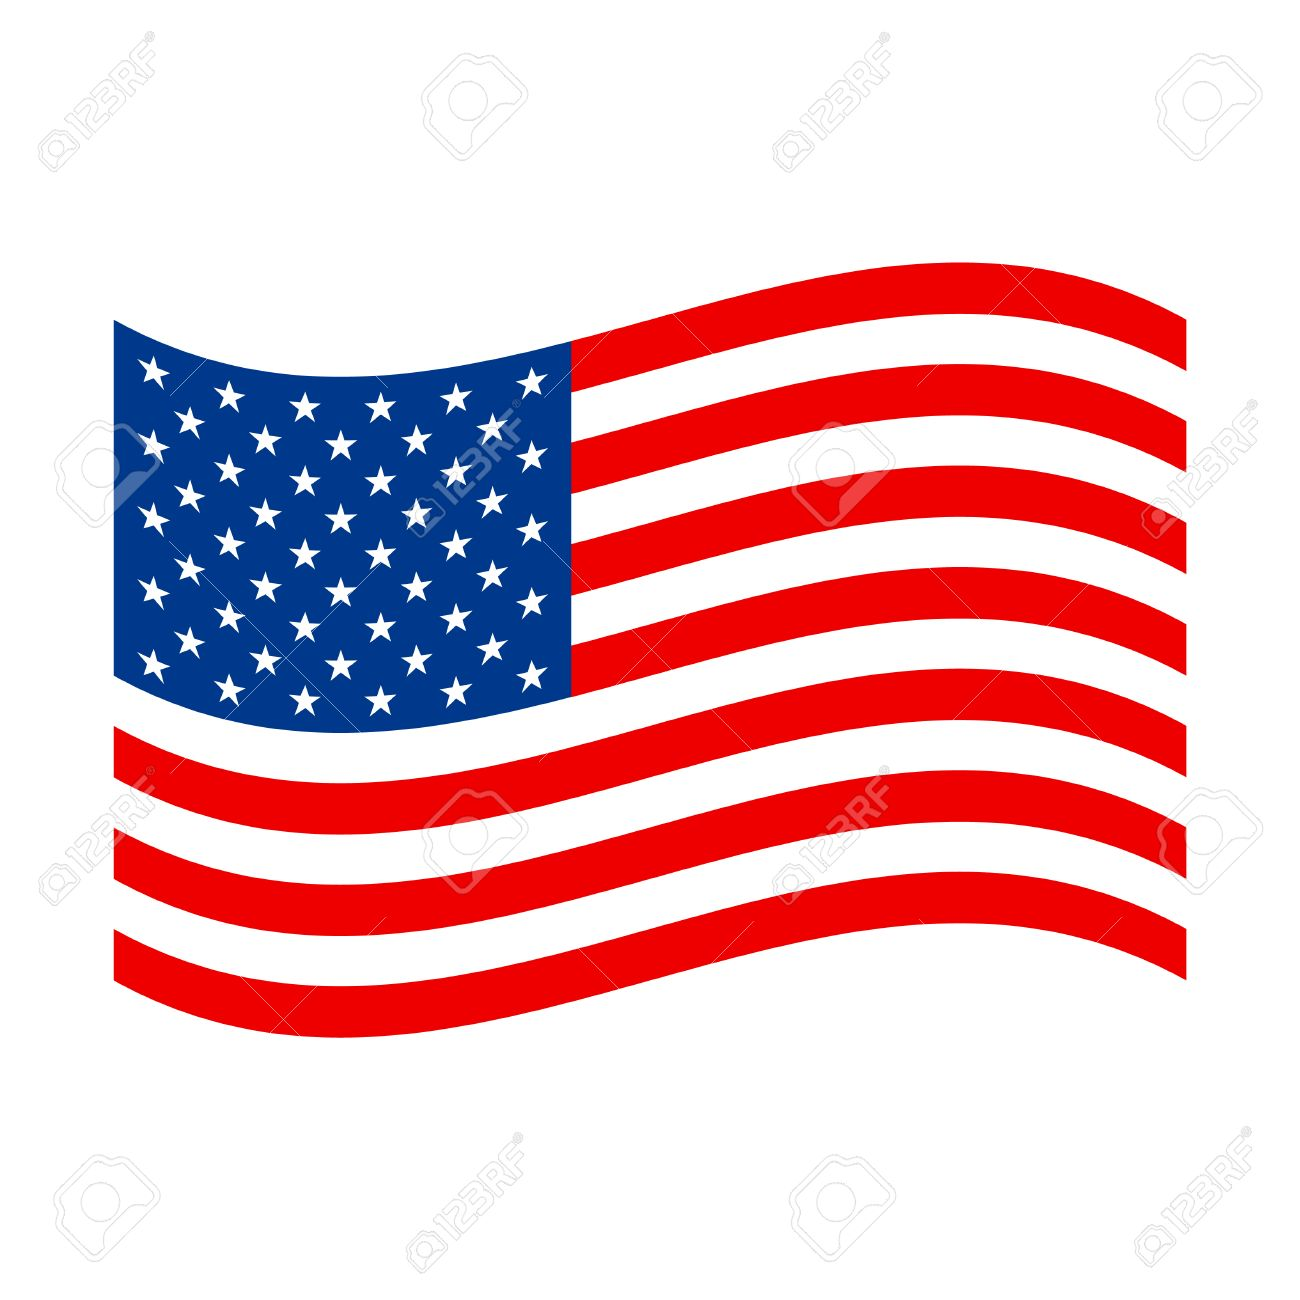 american flag vector icon royalty free cliparts vectors and stock rh 123rf com american flag vector graphic american flag vector template